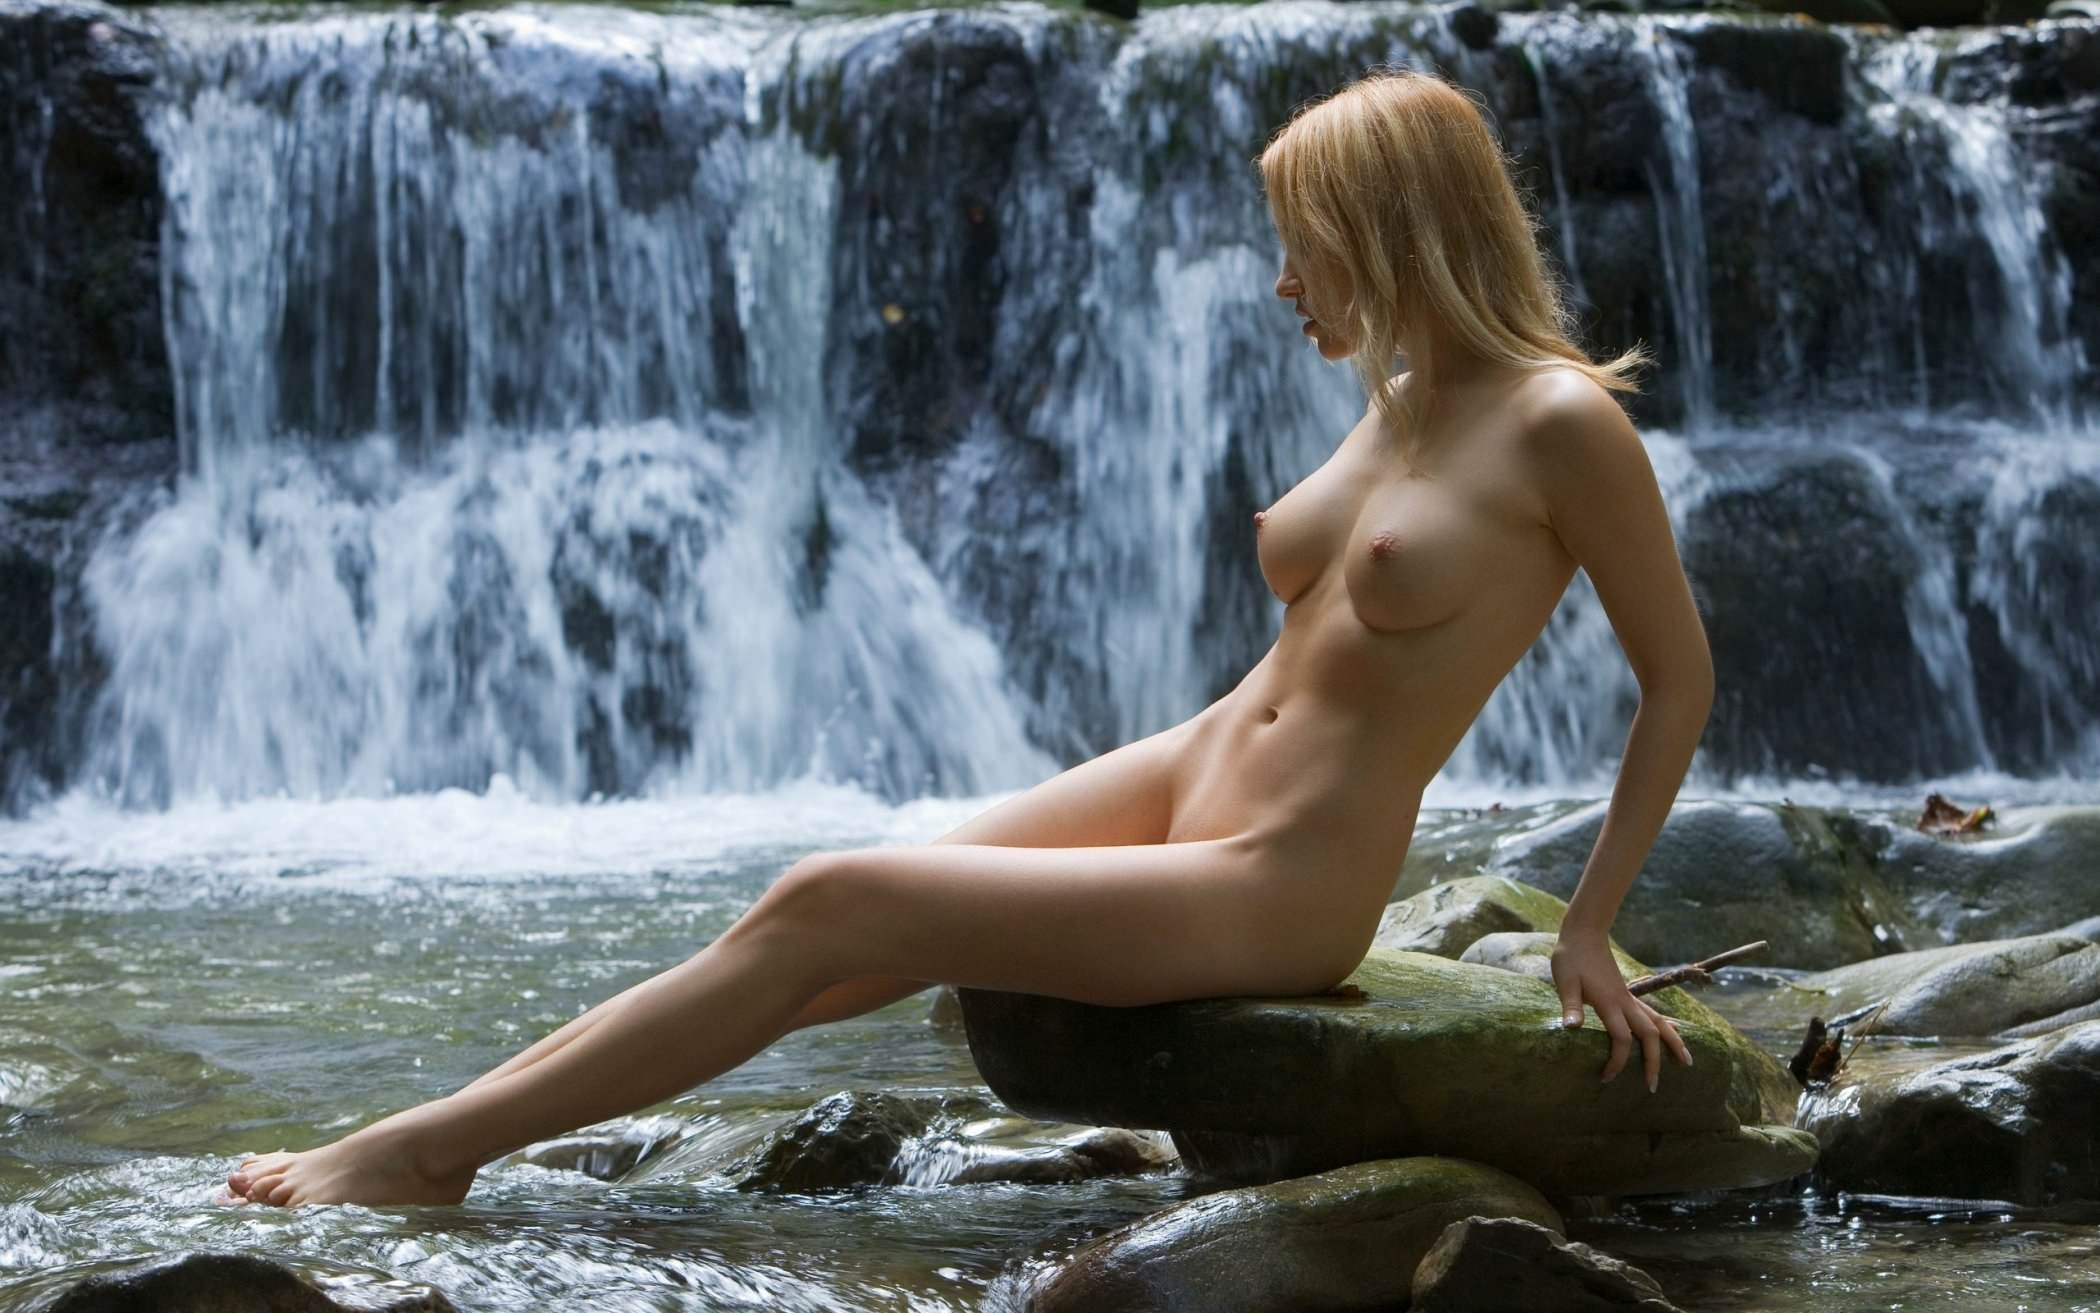 Milla in splashing around naked in a waterfall